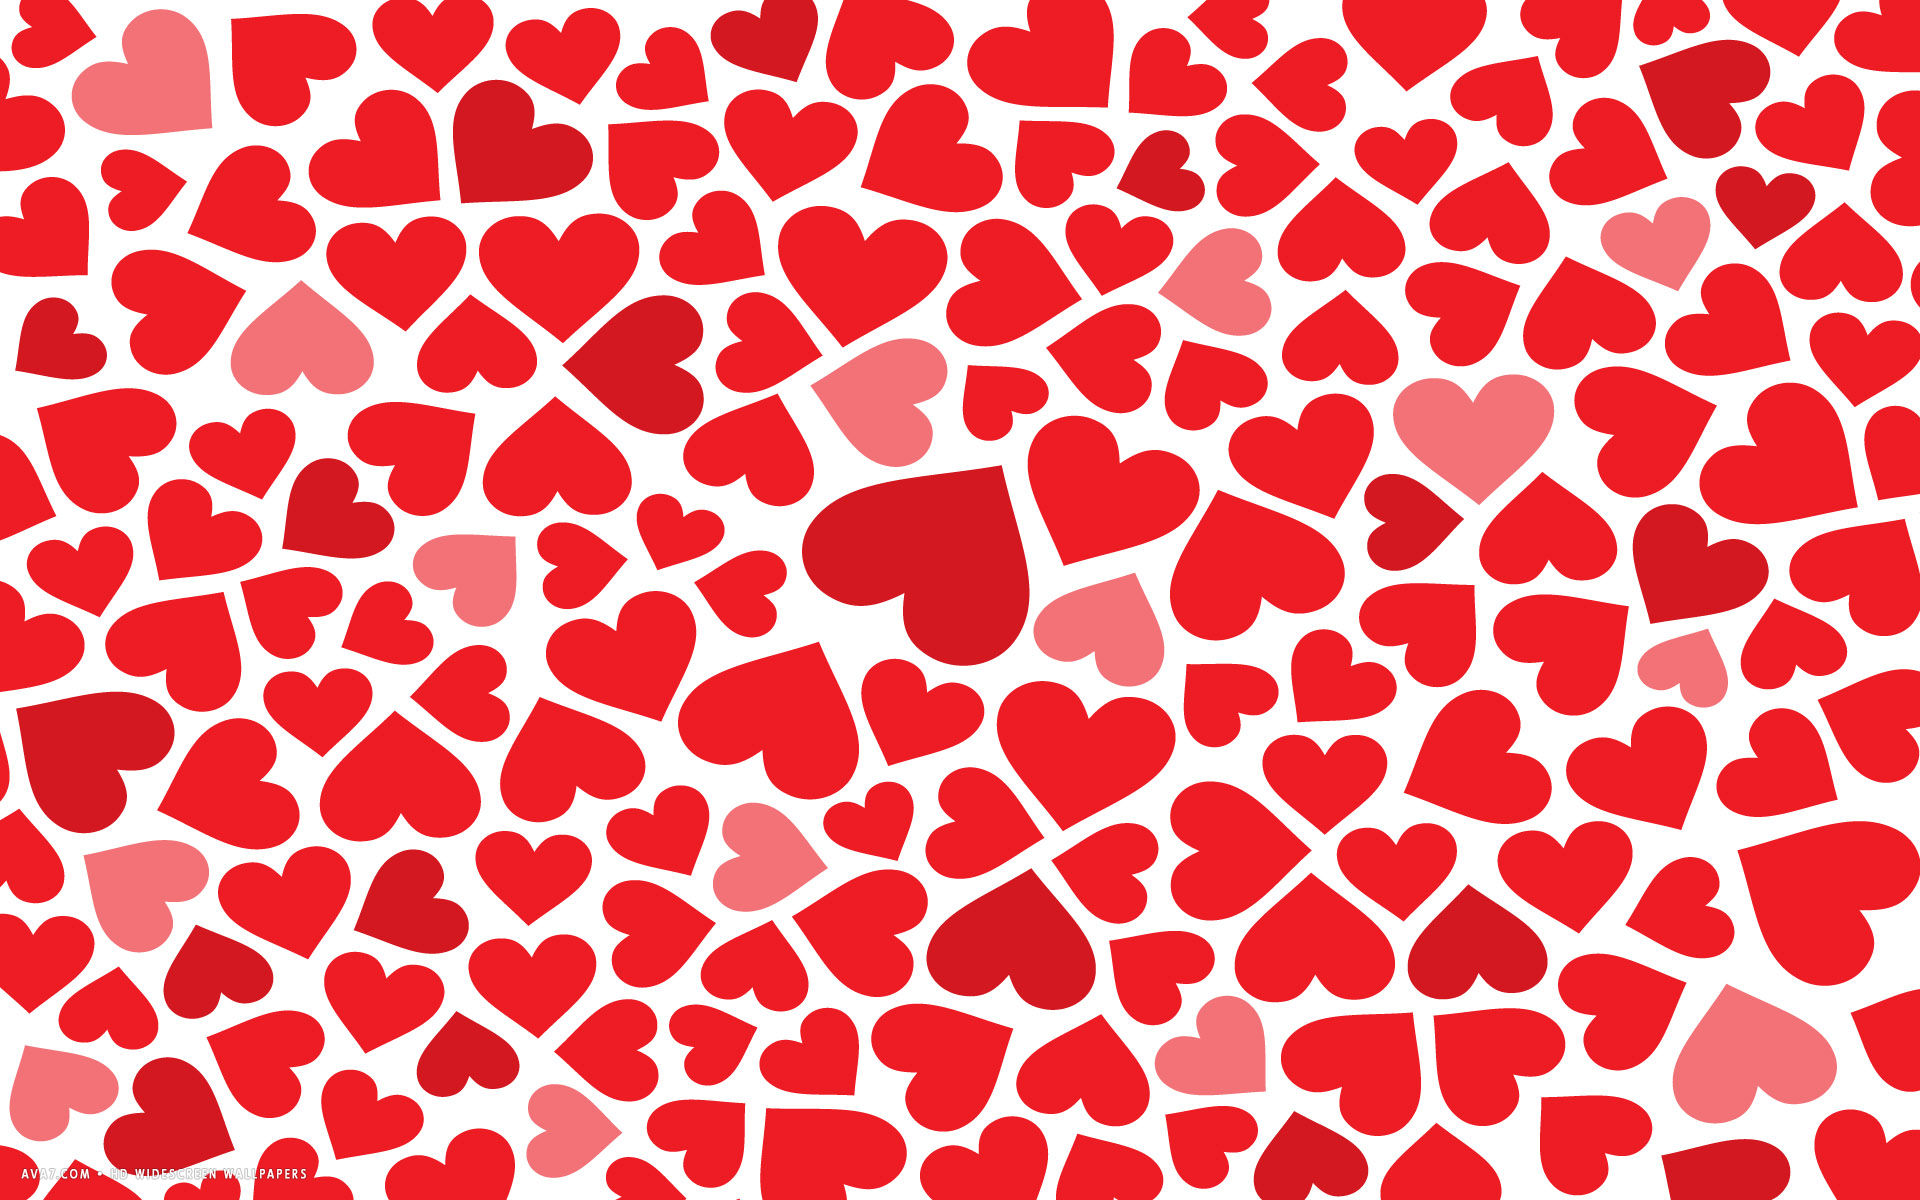 hearts animal print red small pattern texture hd widescreen wallpaper - Small Animal Pictures To Print